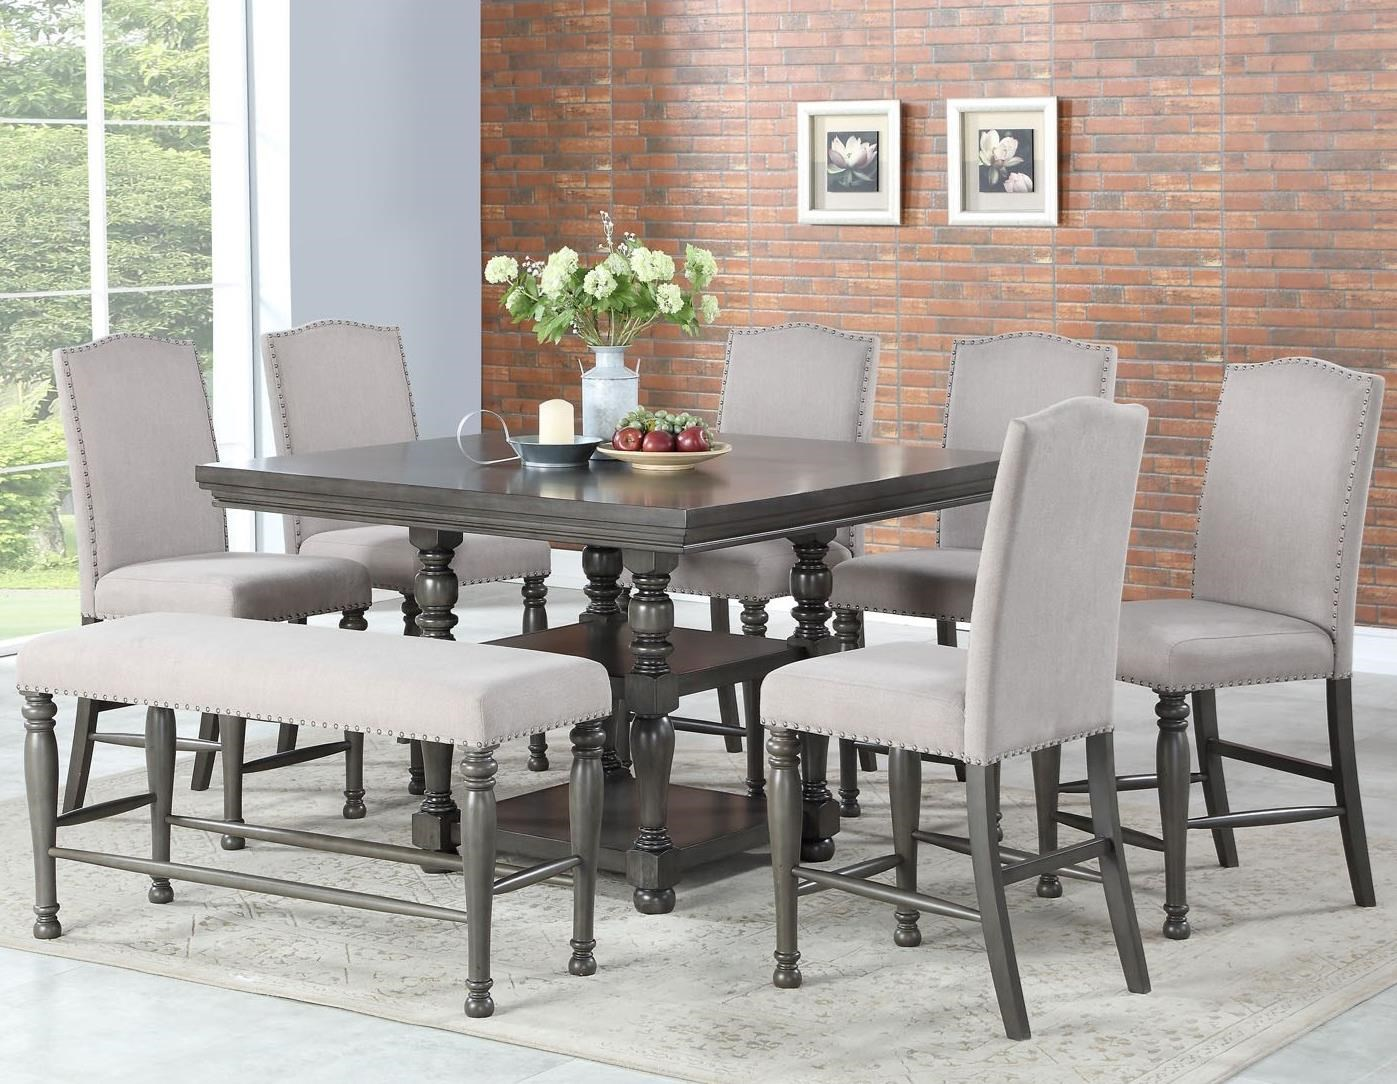 8 Pc Counter Dining Set w/ Bench